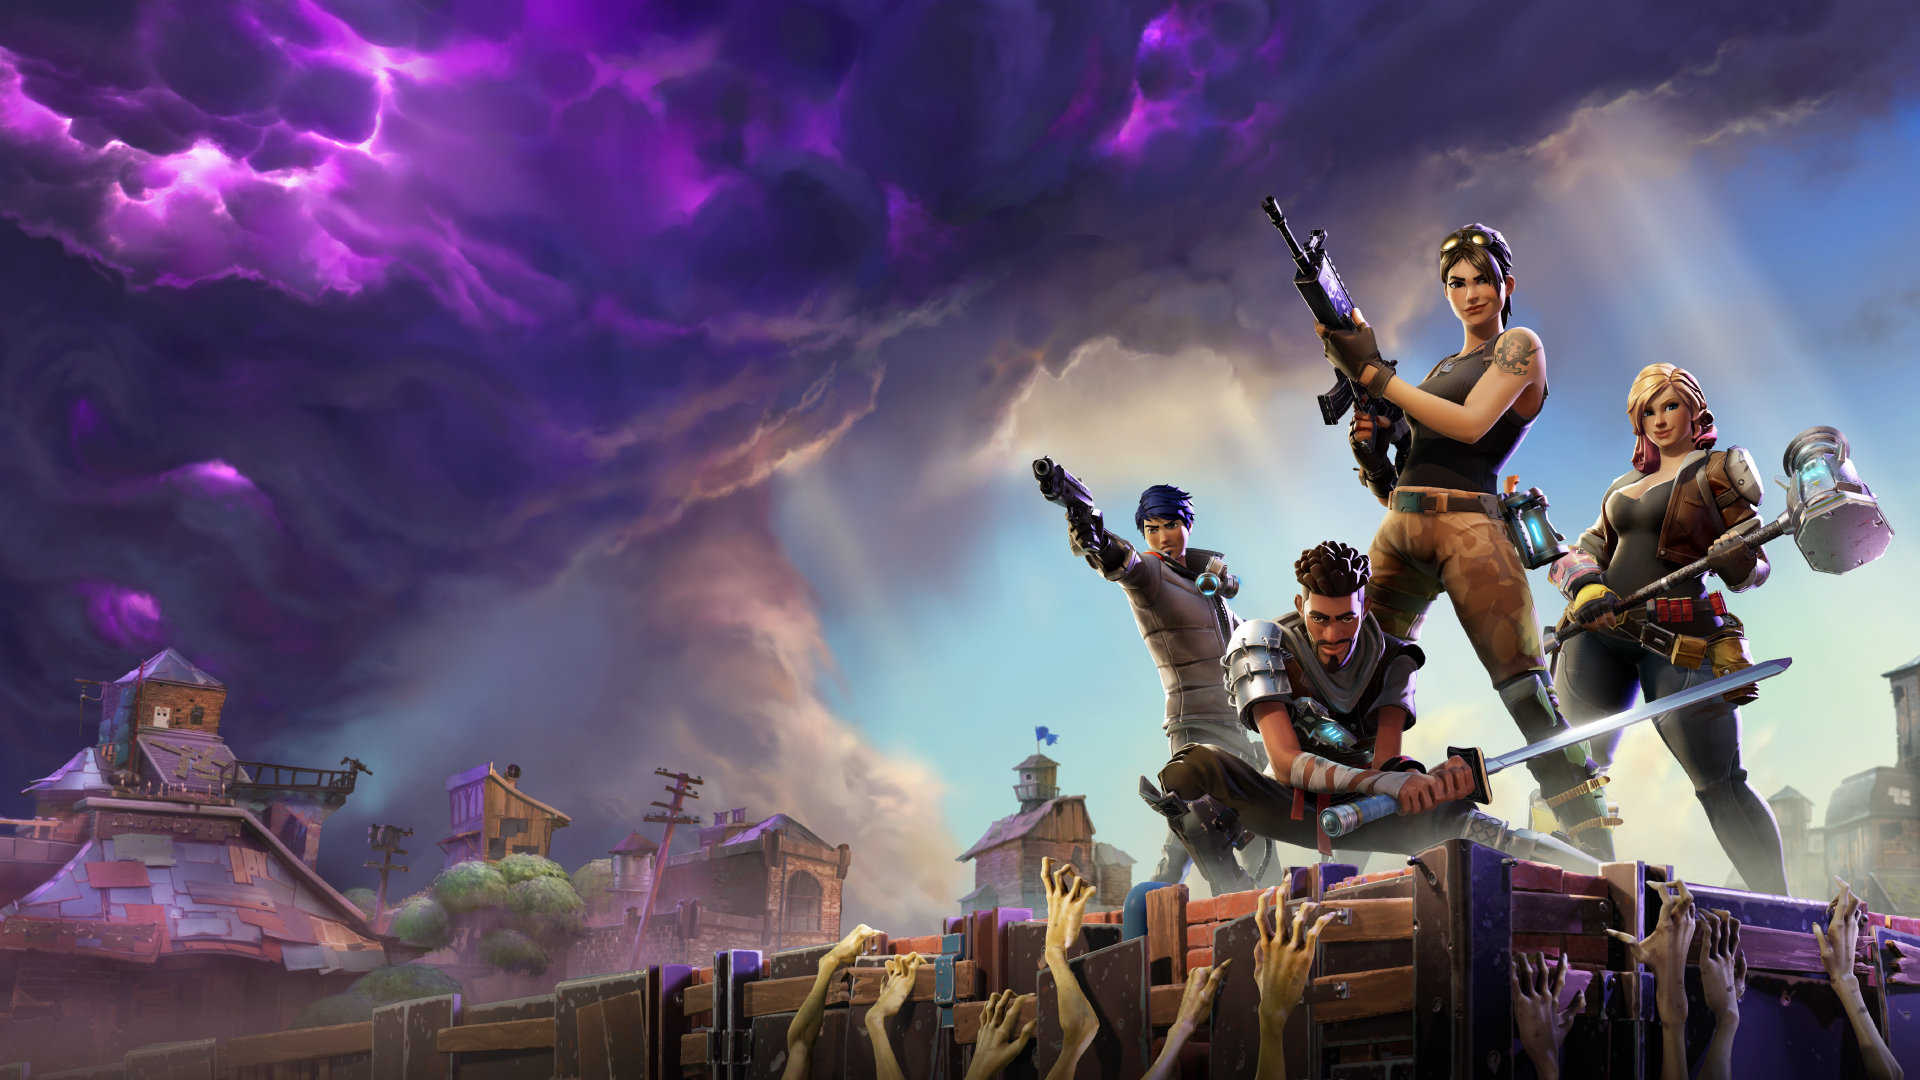 Spooky update coming to Fortnite